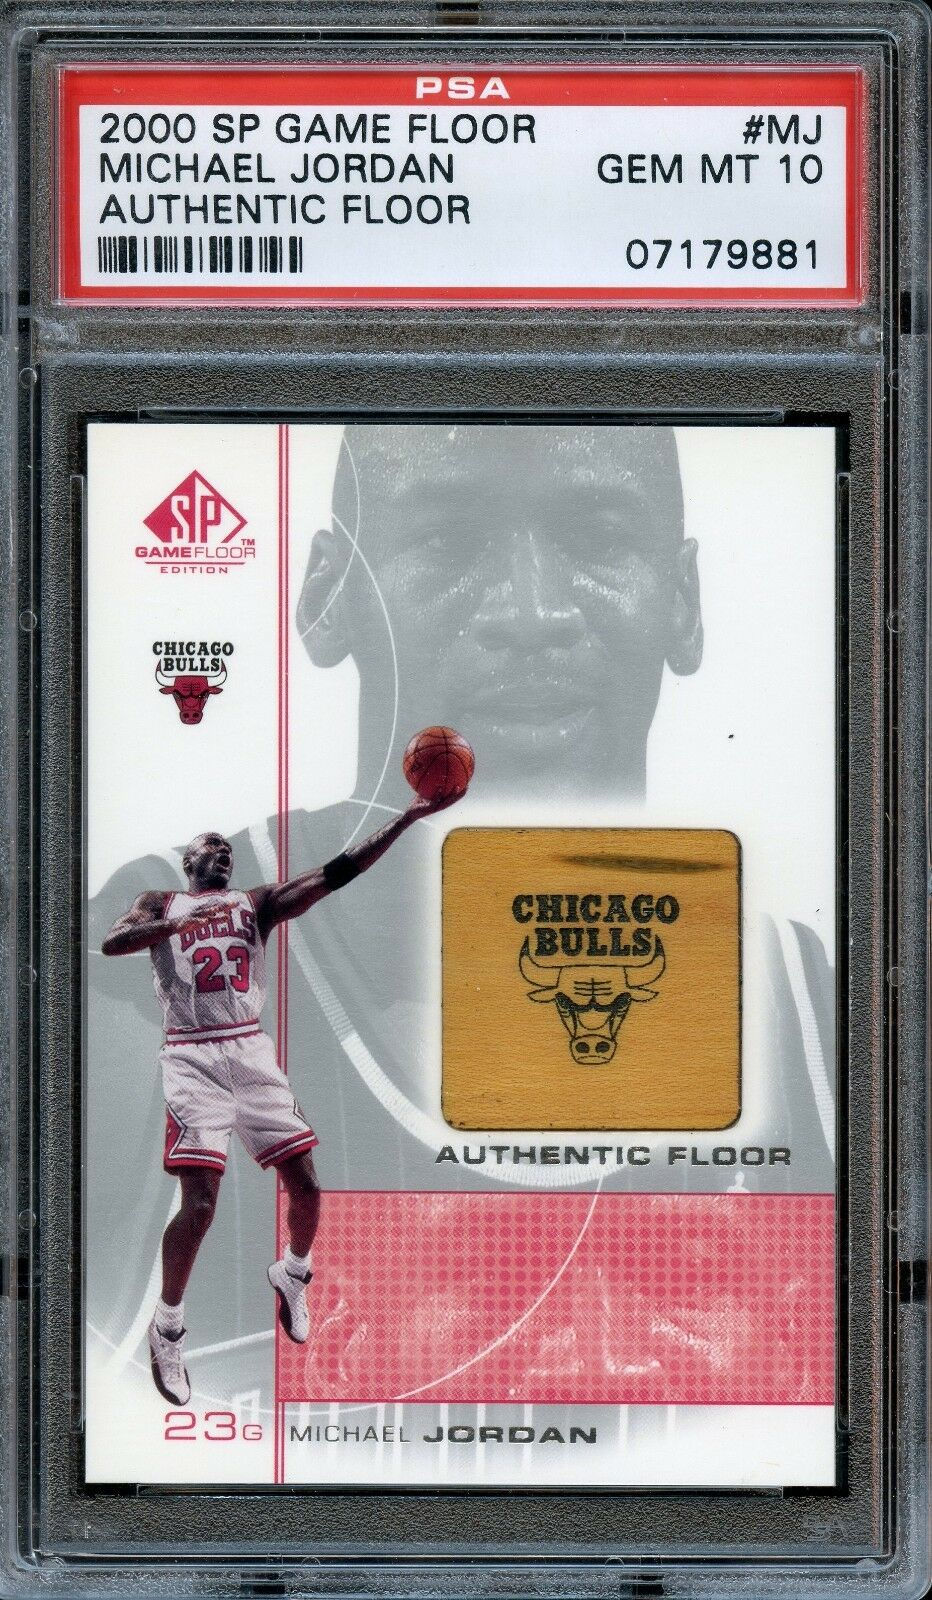 2000 SP Game Floor Authentic Floor #MJ Michael Jordan PSA 10 GEM MINT. POP 8